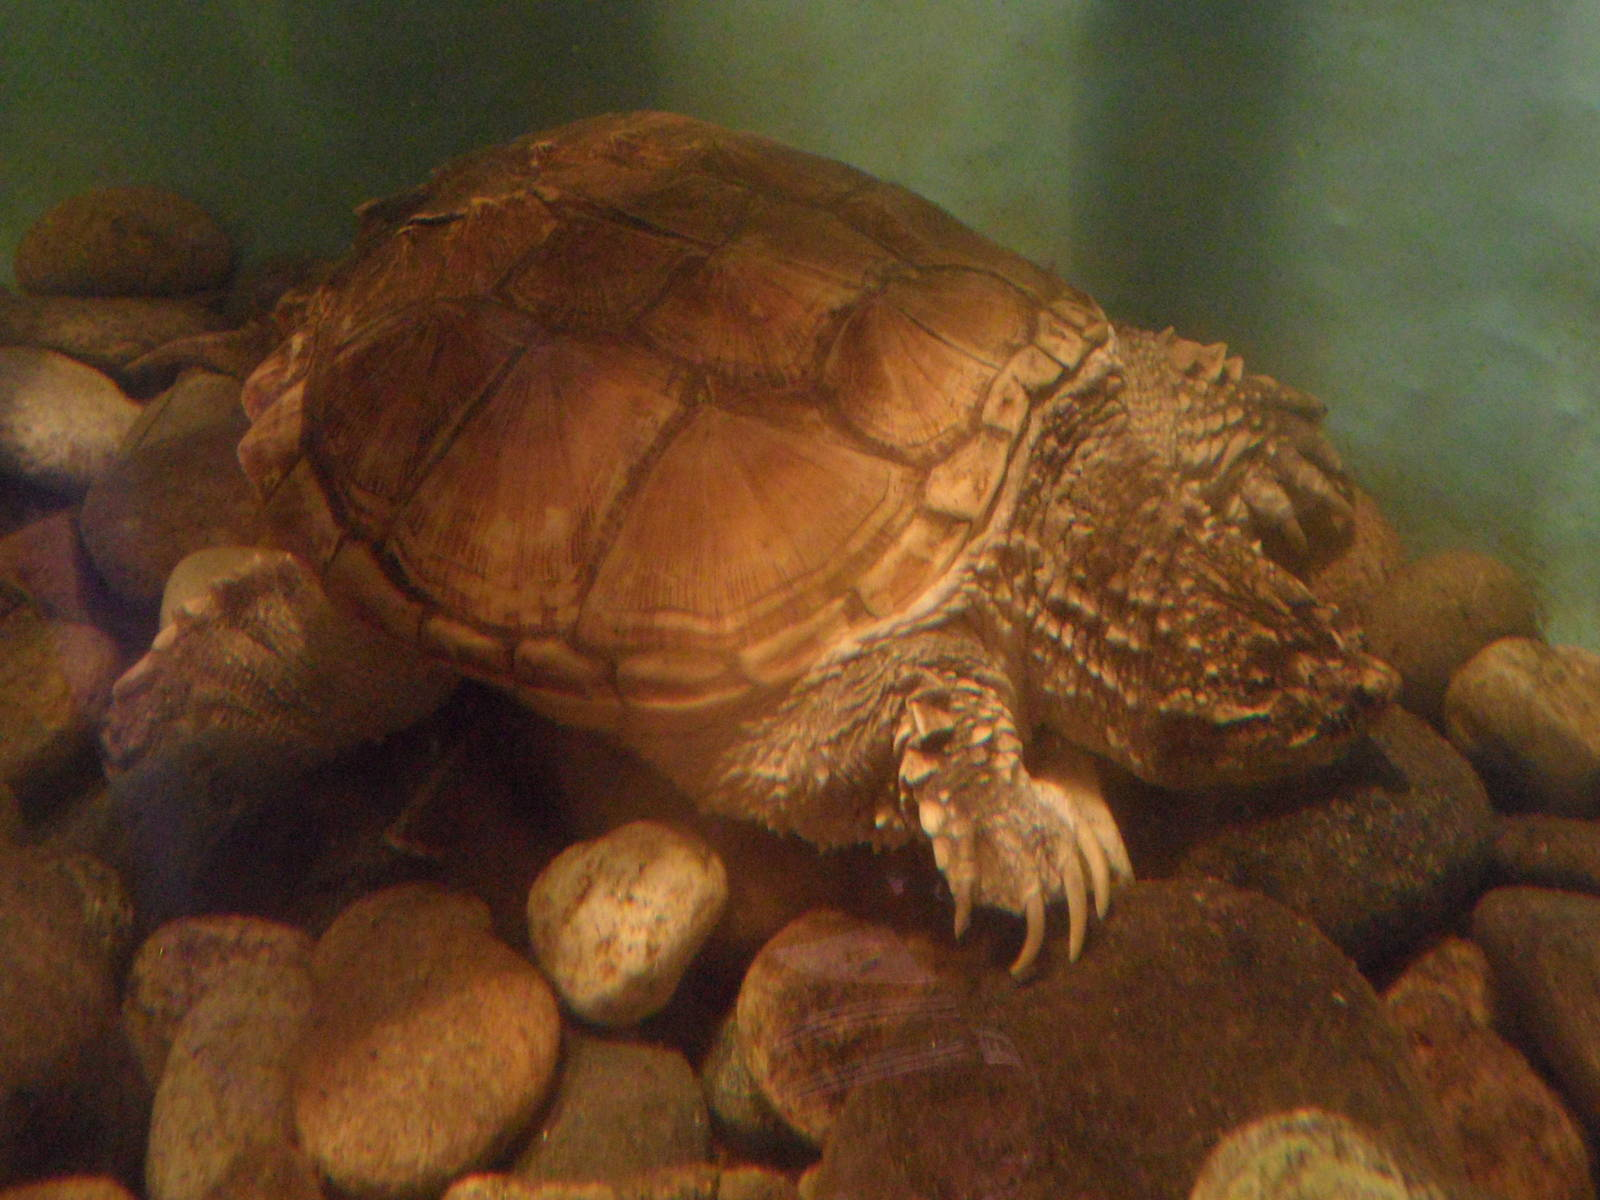 Snapping turtle - ZooChat